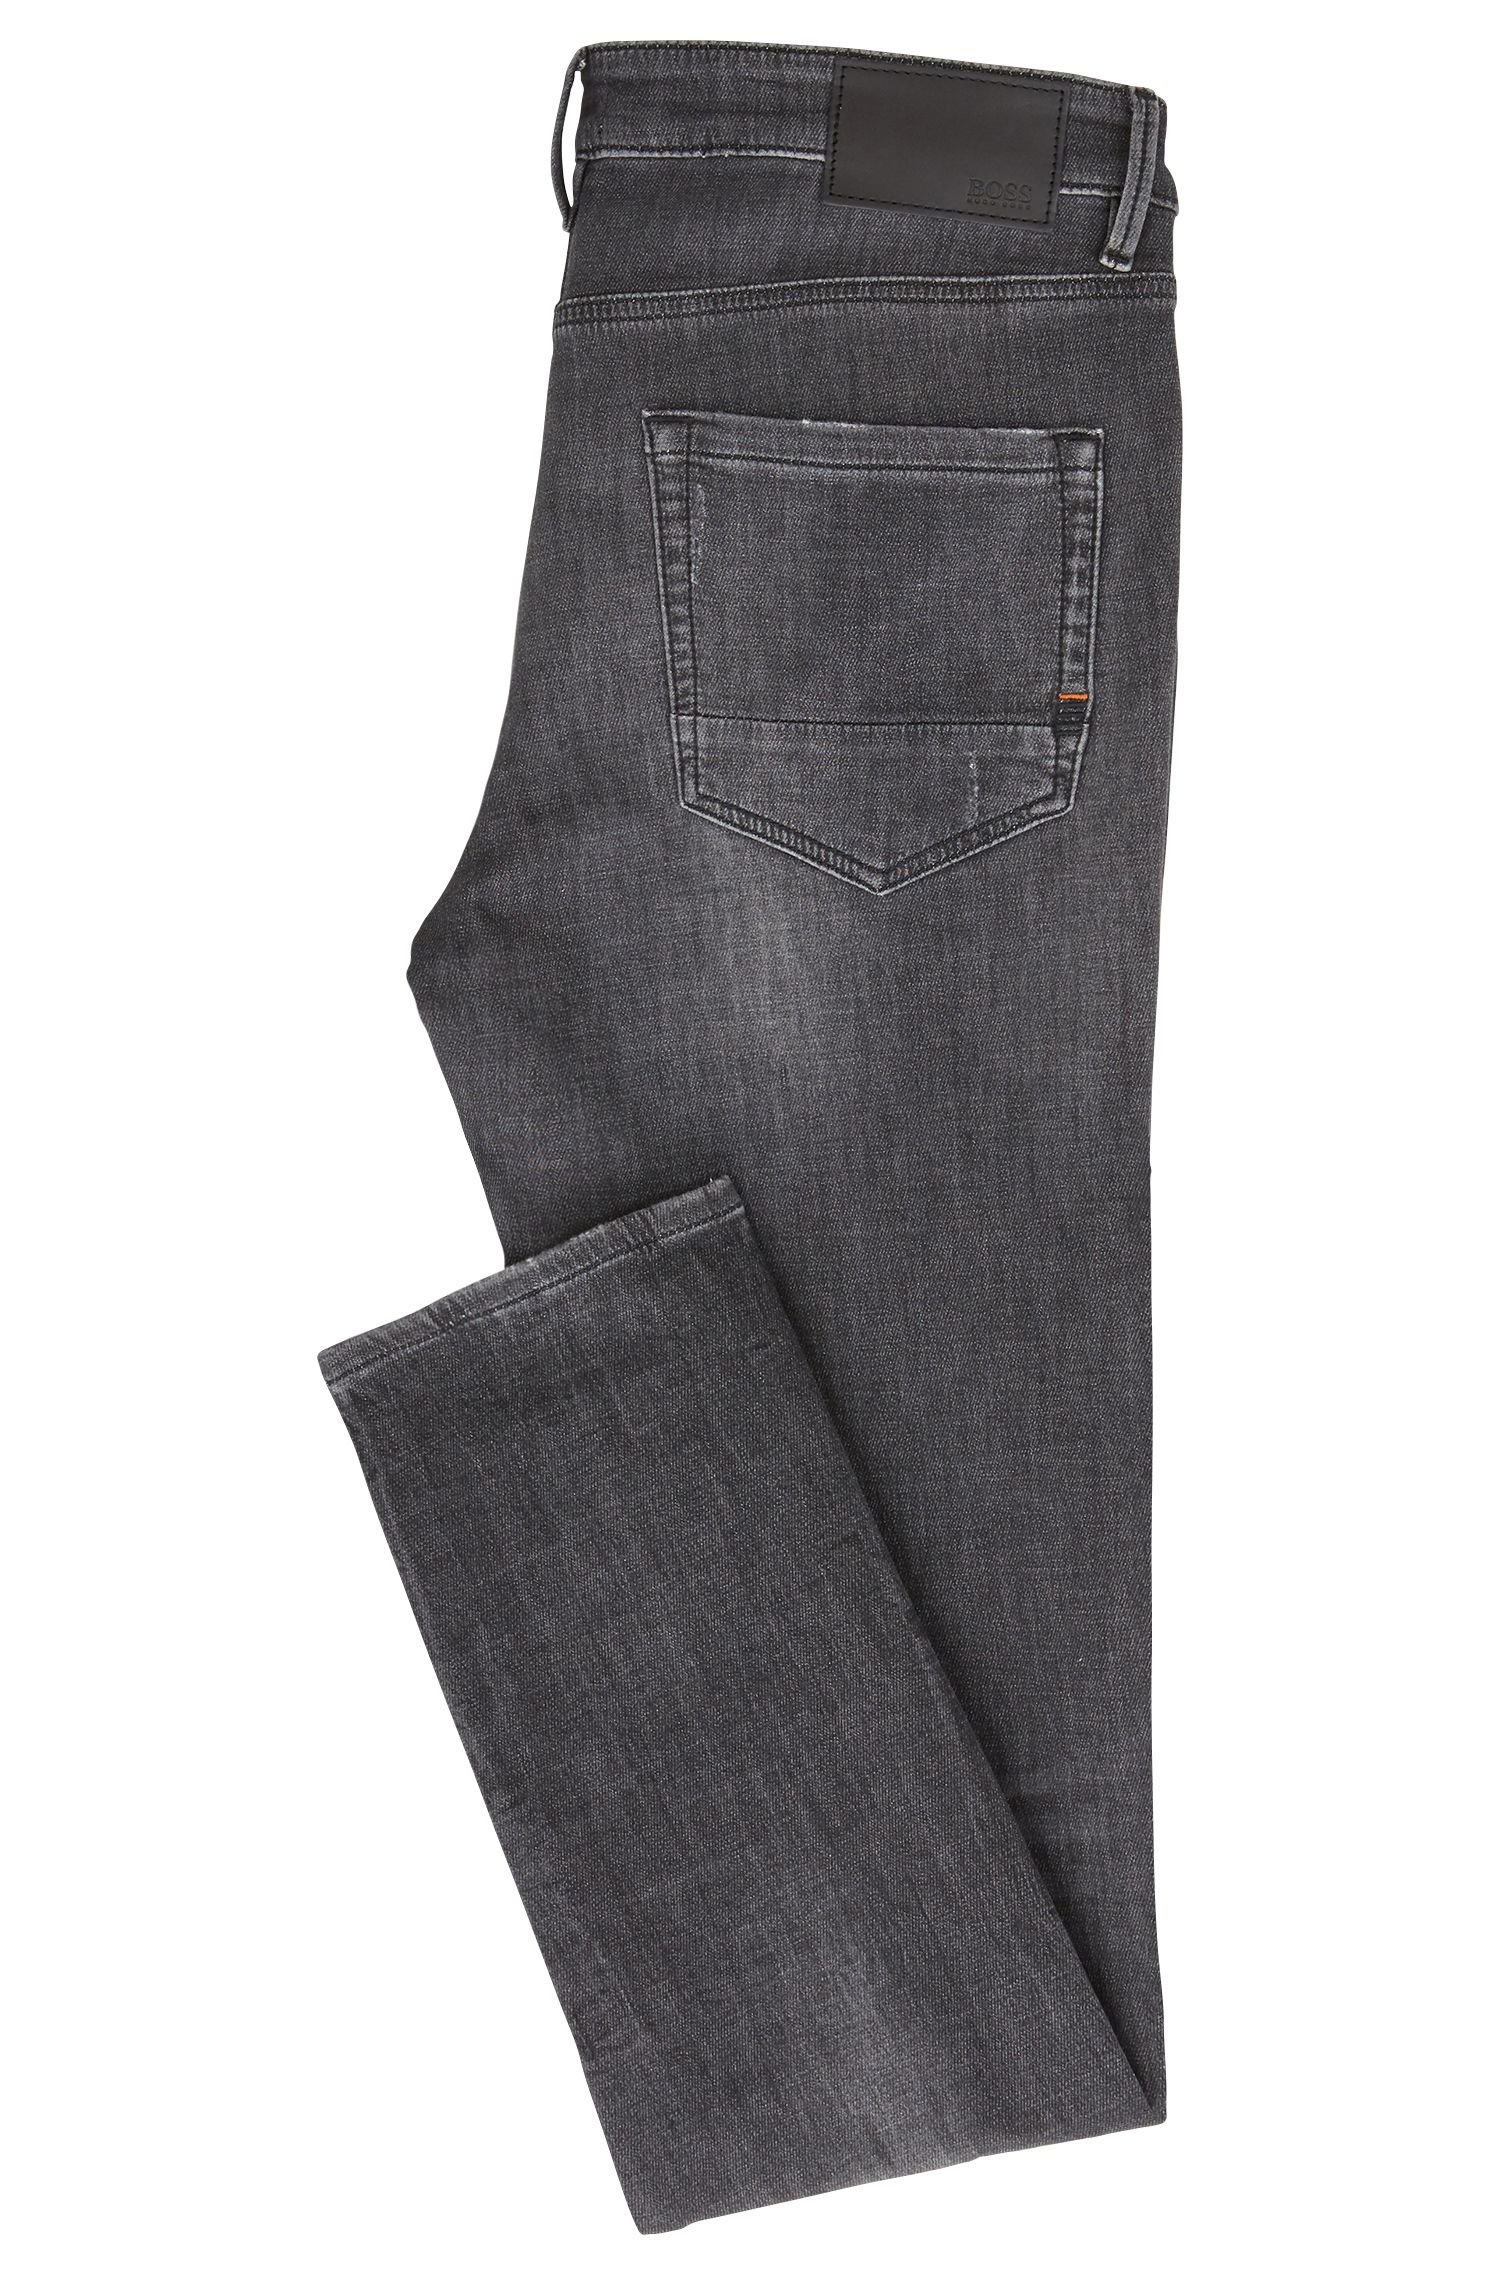 Skinny-fit jeans in gray-knitted stretch denim